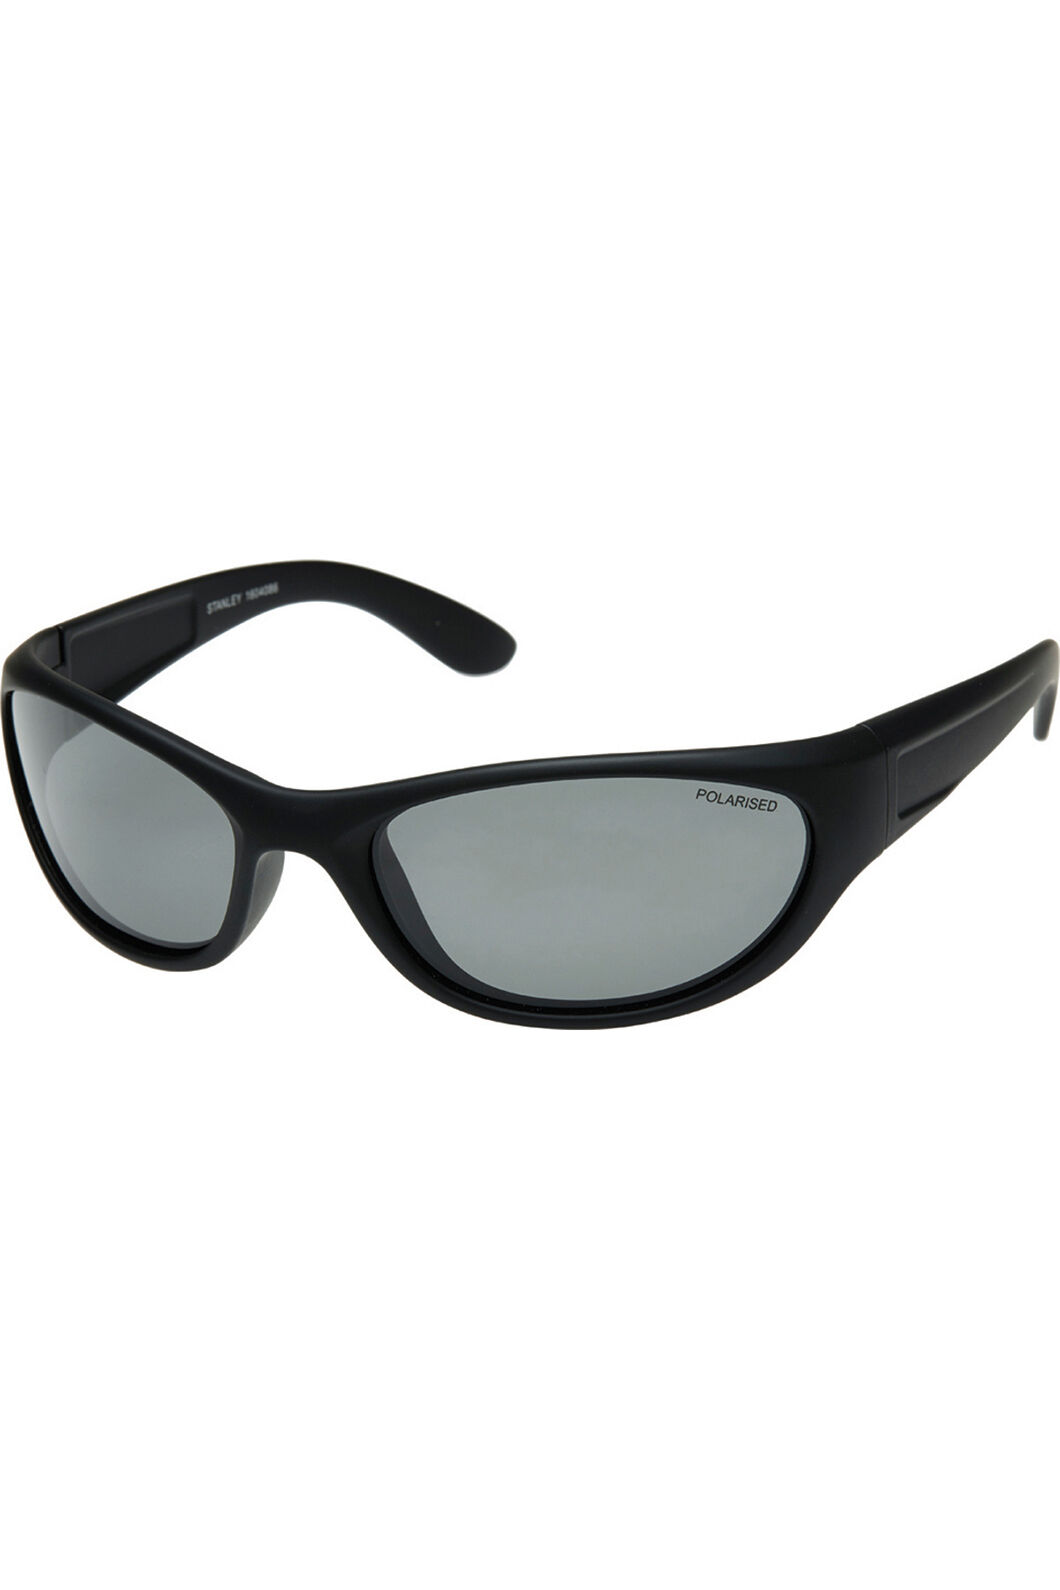 Cancer Council Men's Stanley Sunglasses, Black, hi-res